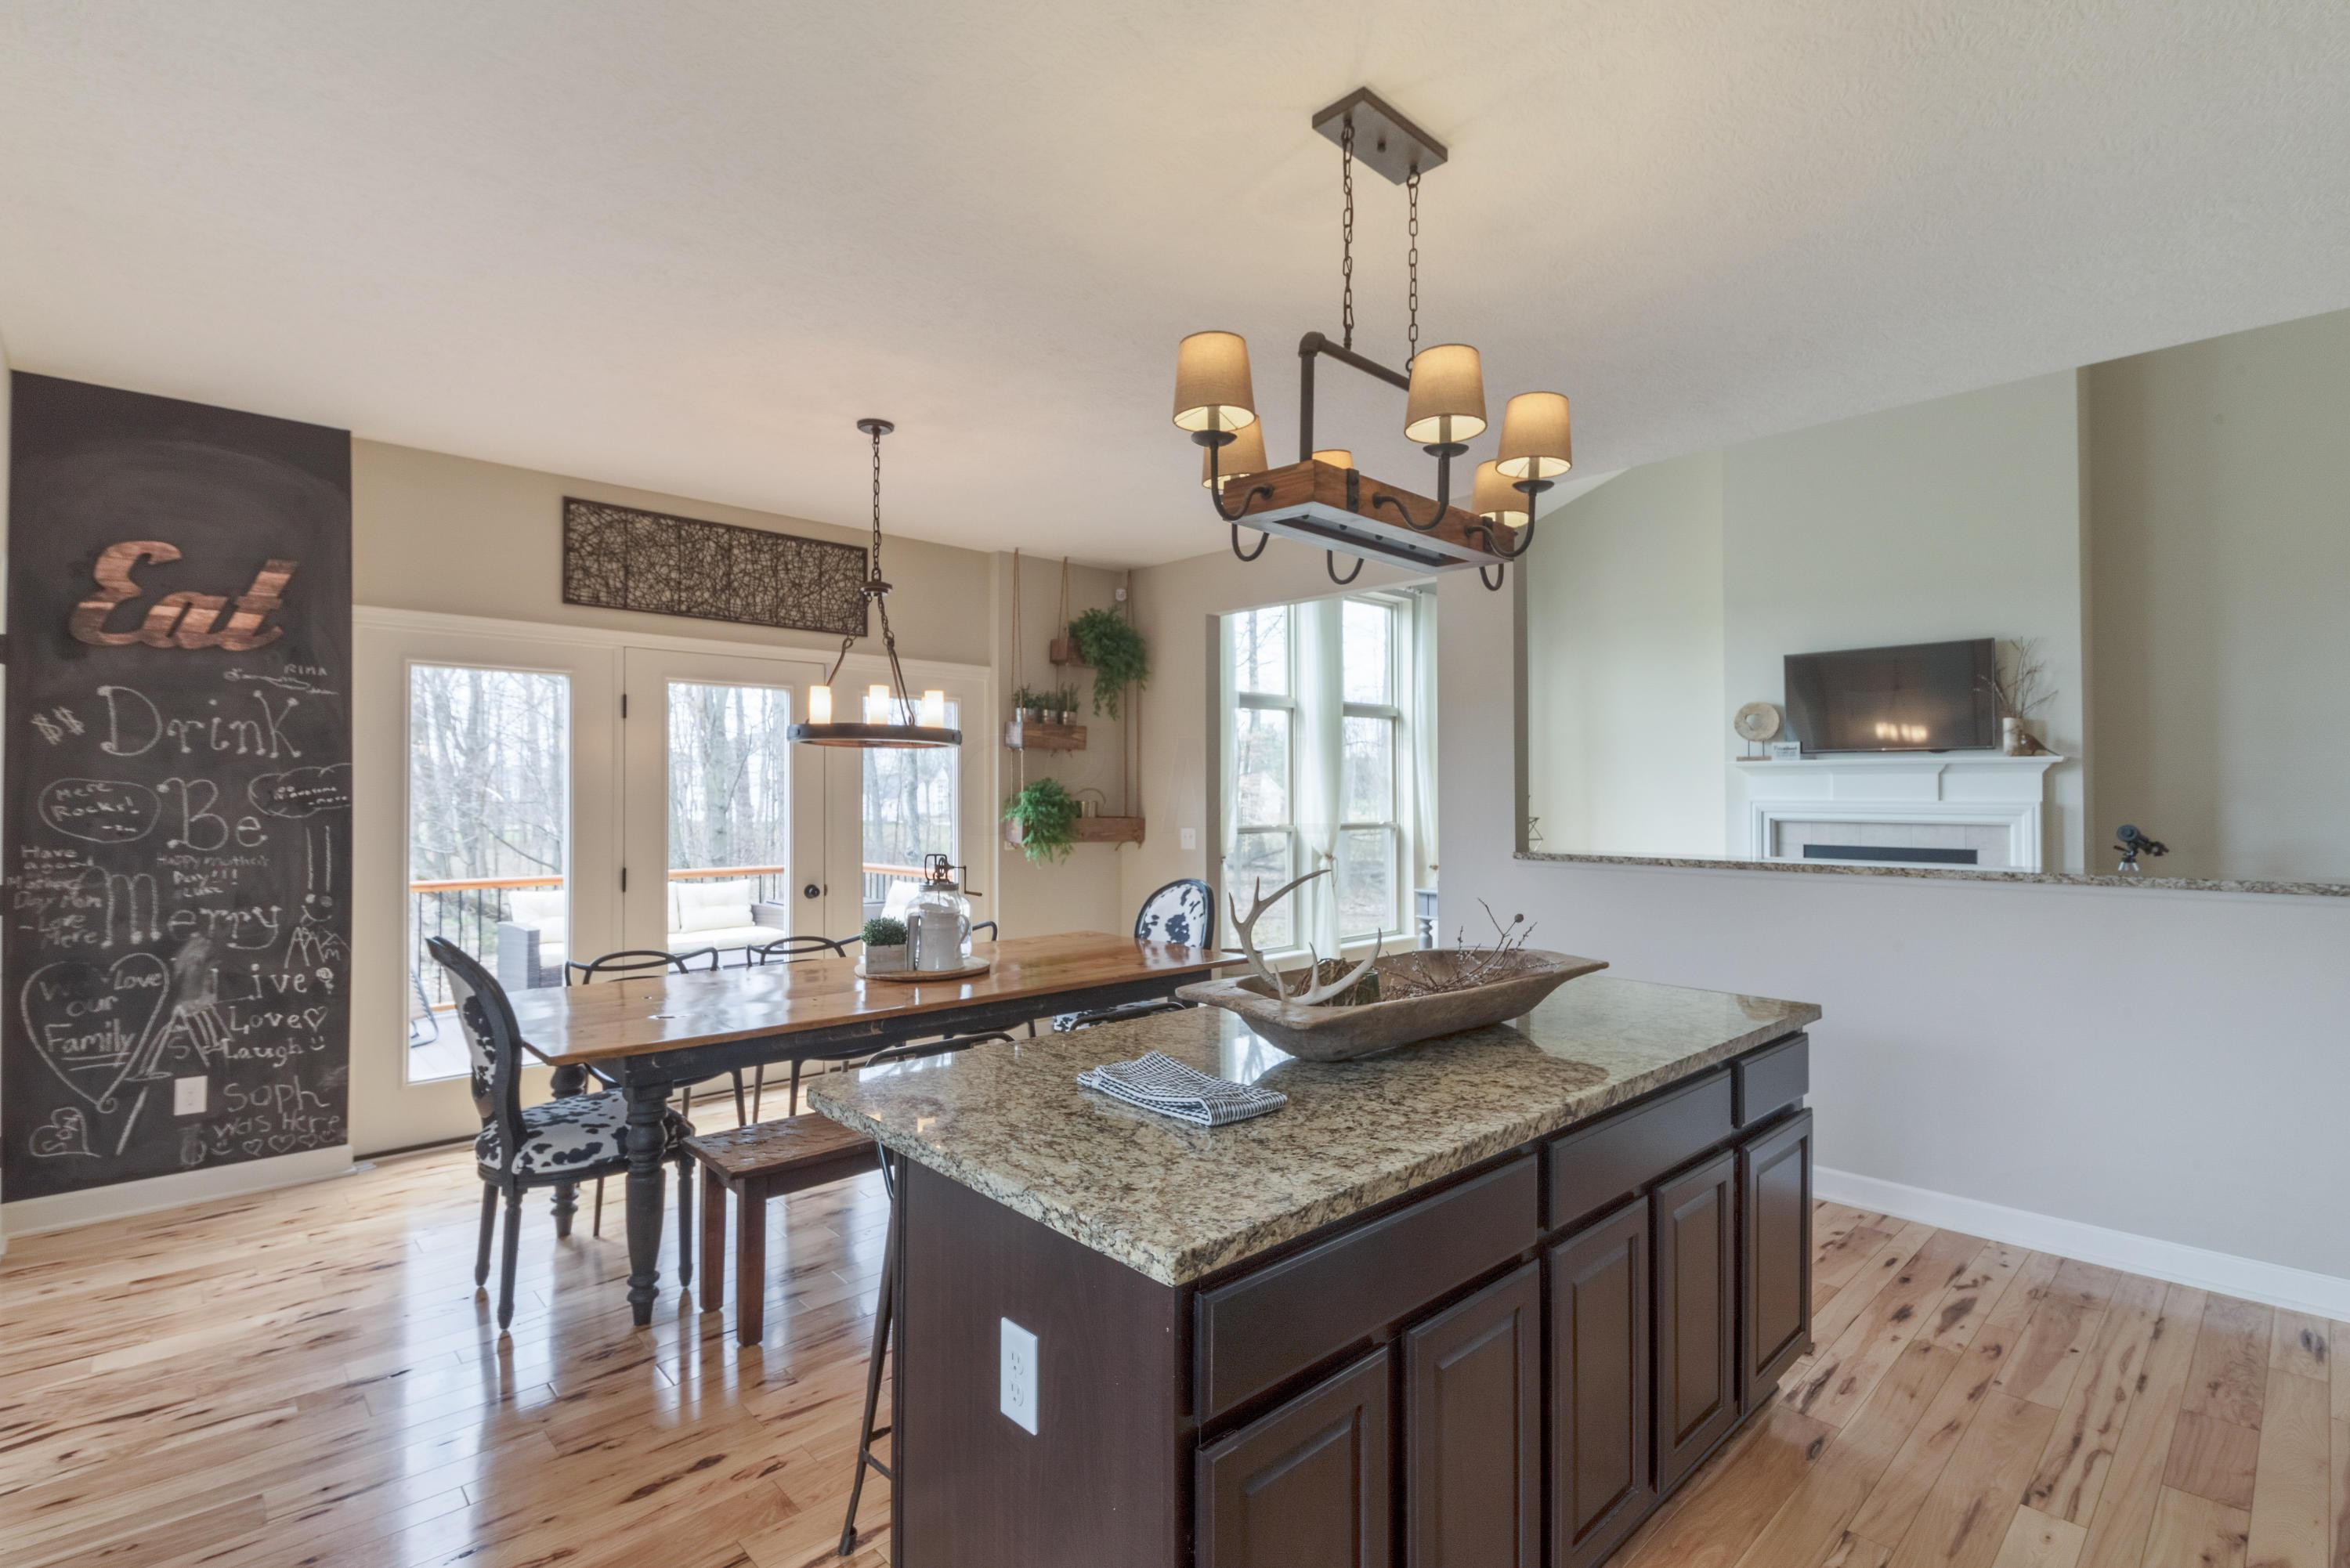 1694 Somerford Drive, Galena, Ohio 43021, 4 Bedrooms Bedrooms, ,3 BathroomsBathrooms,Residential,For Sale,Somerford,220040042